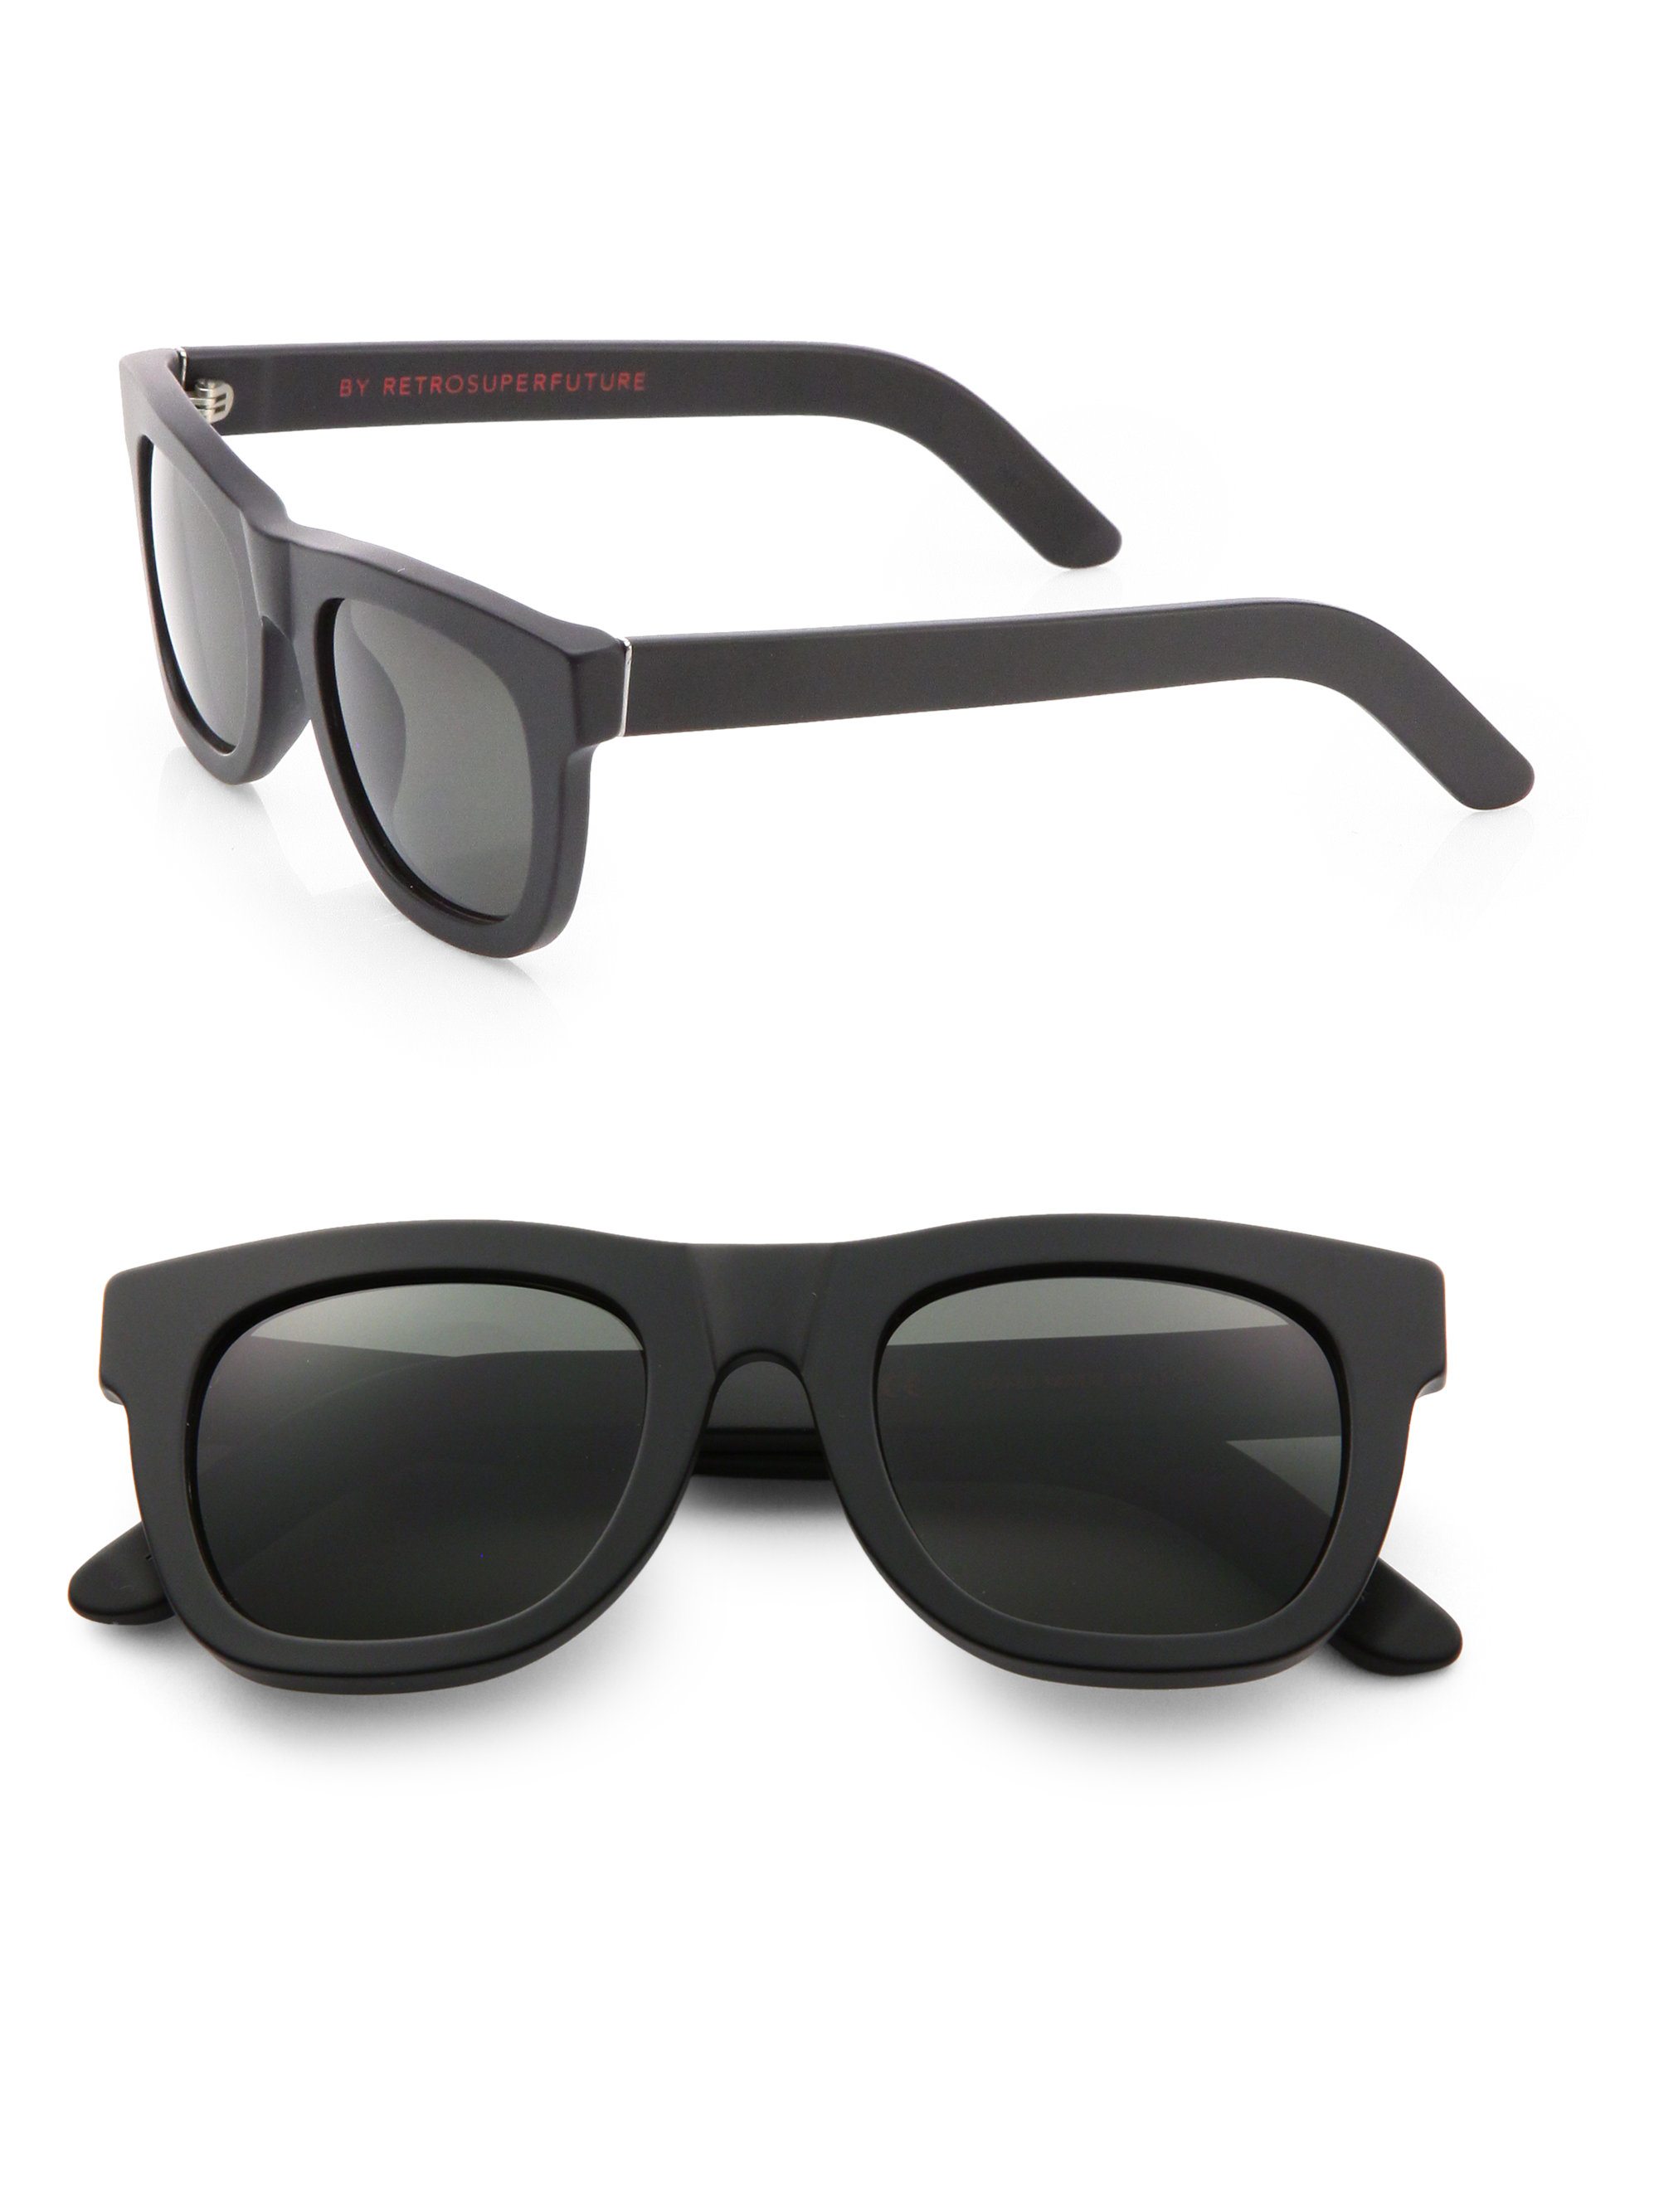 Browse Stylights collection of Mens Super® Sunglasses: Best sellers up to −20% 33 products Variety of colors › Shop now!